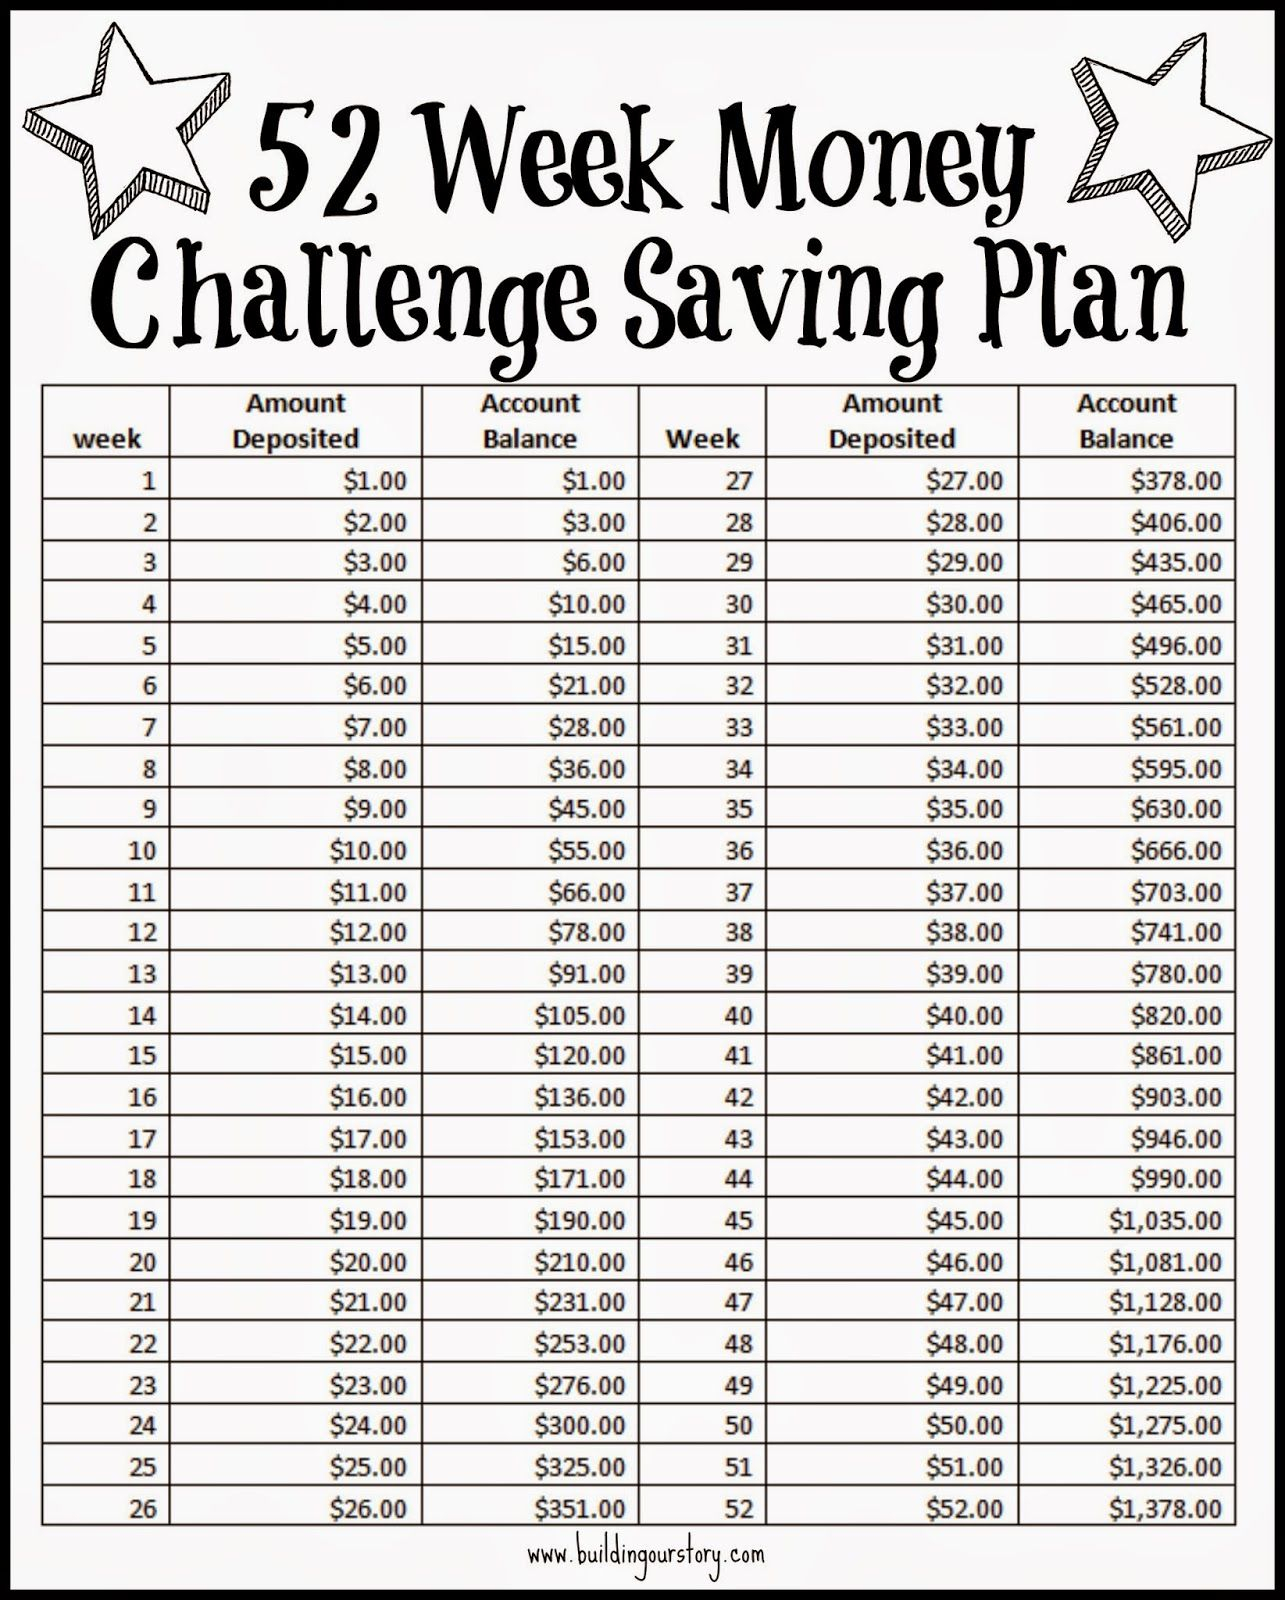 52 Week Money Challenge Saving Plan - Free Printable Regarding 52 Week Challenge Calendar